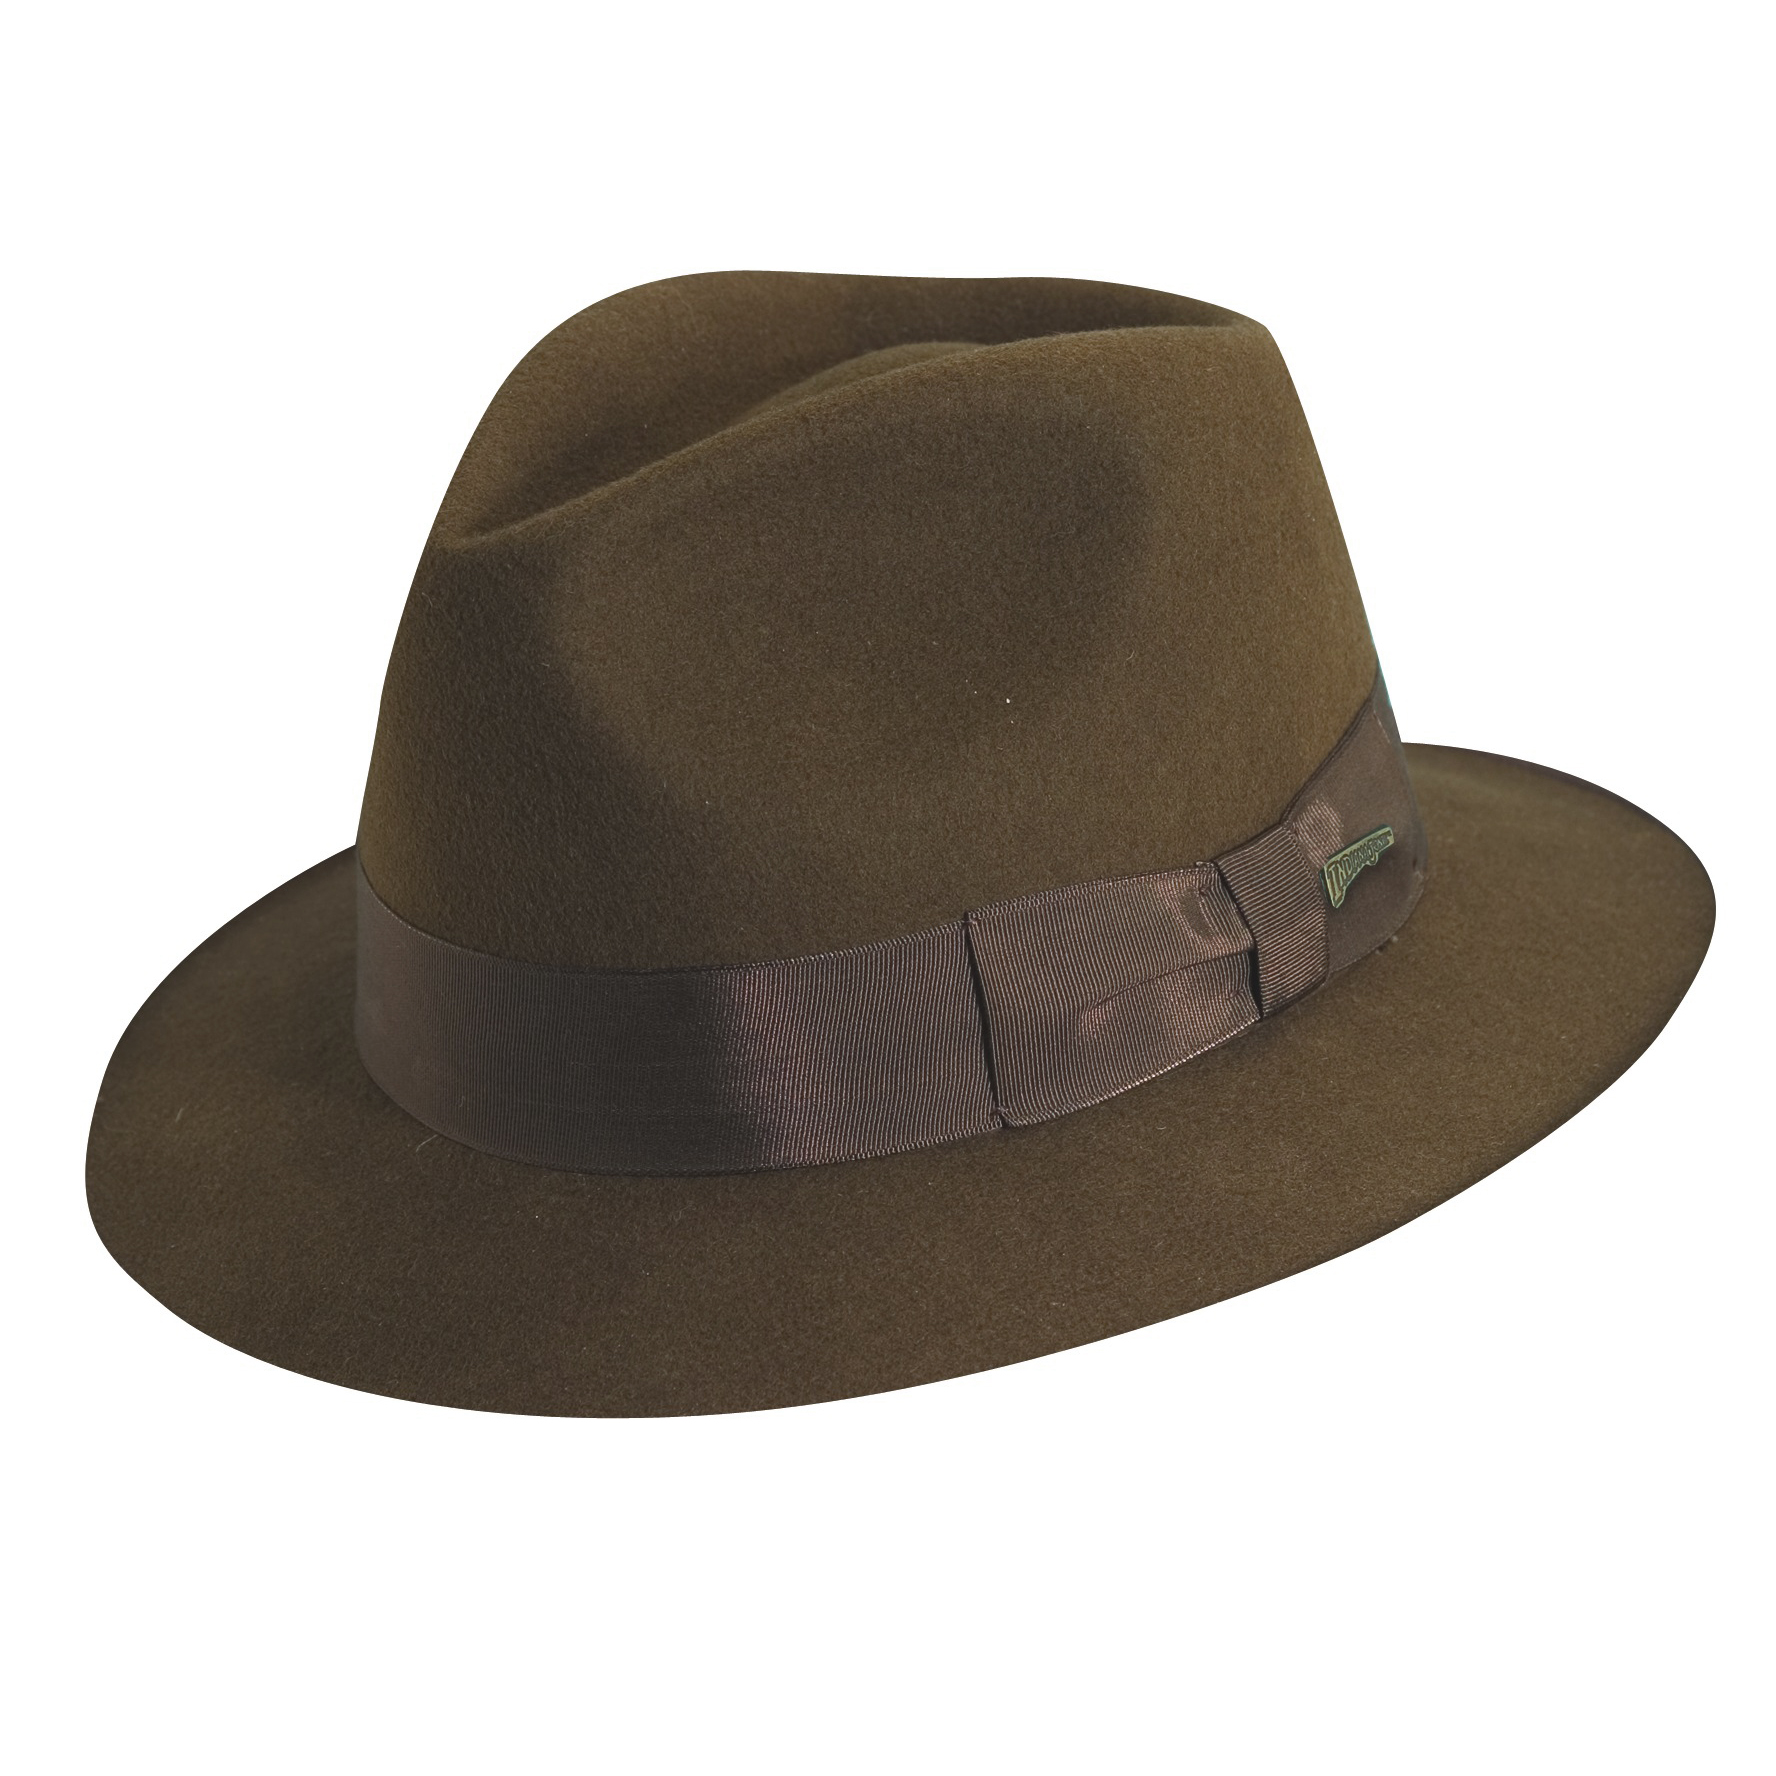 9e9b6fb6 Indiana Jones Wool Felt Fedora Hat with Leather Sweatband | Explorer ...